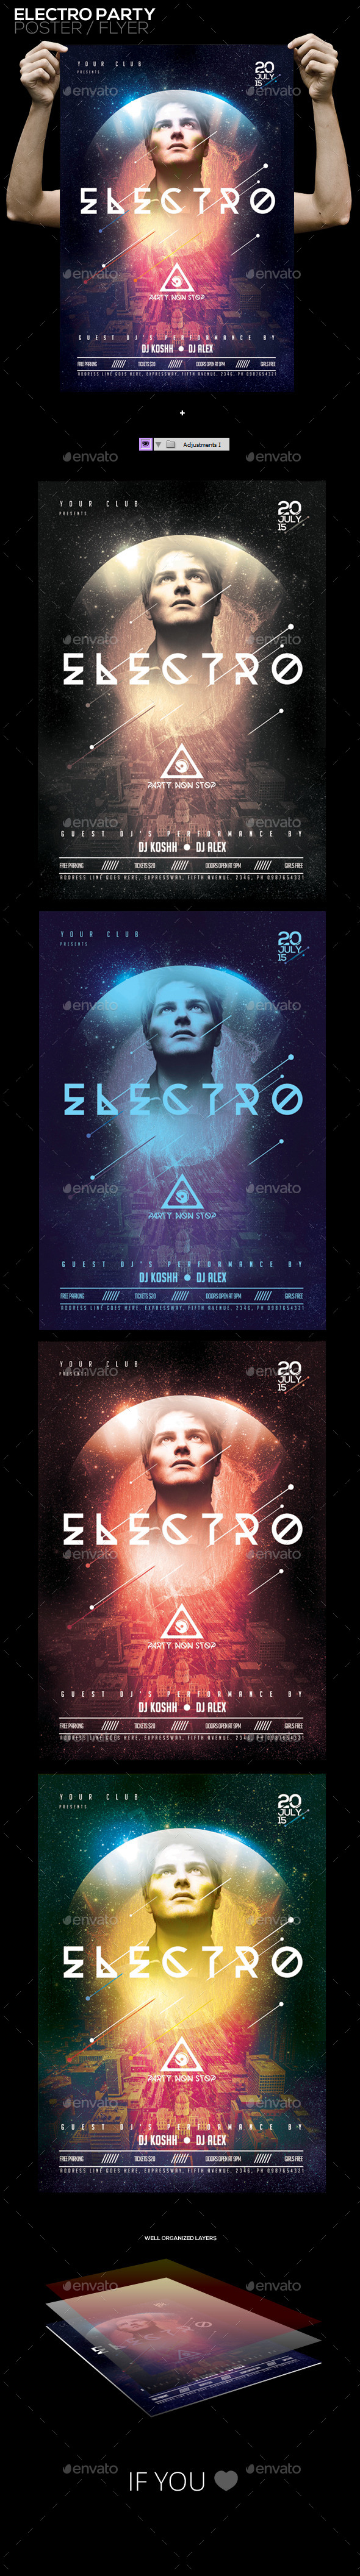 Electro Party PSD Poster/Flyer Template - Events Flyers